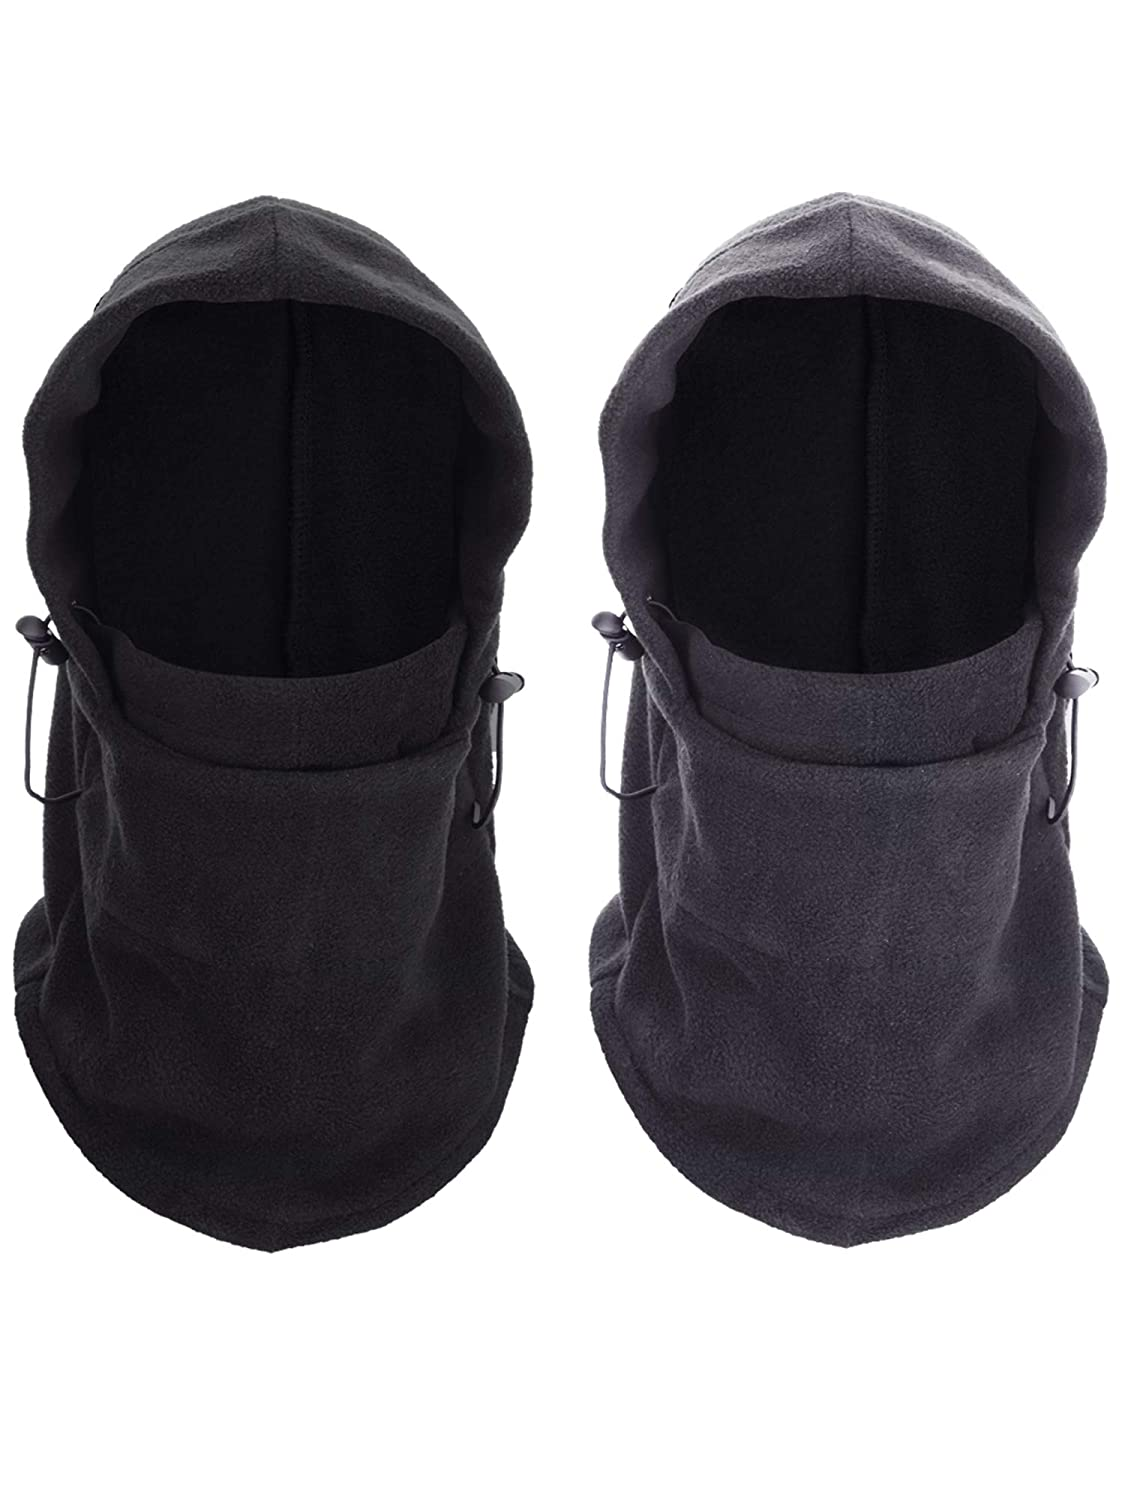 Tatuo 2 Pieces Balaclava Masks Windproof Face Mask Ski Cycling Fleece Hood for Men and Women